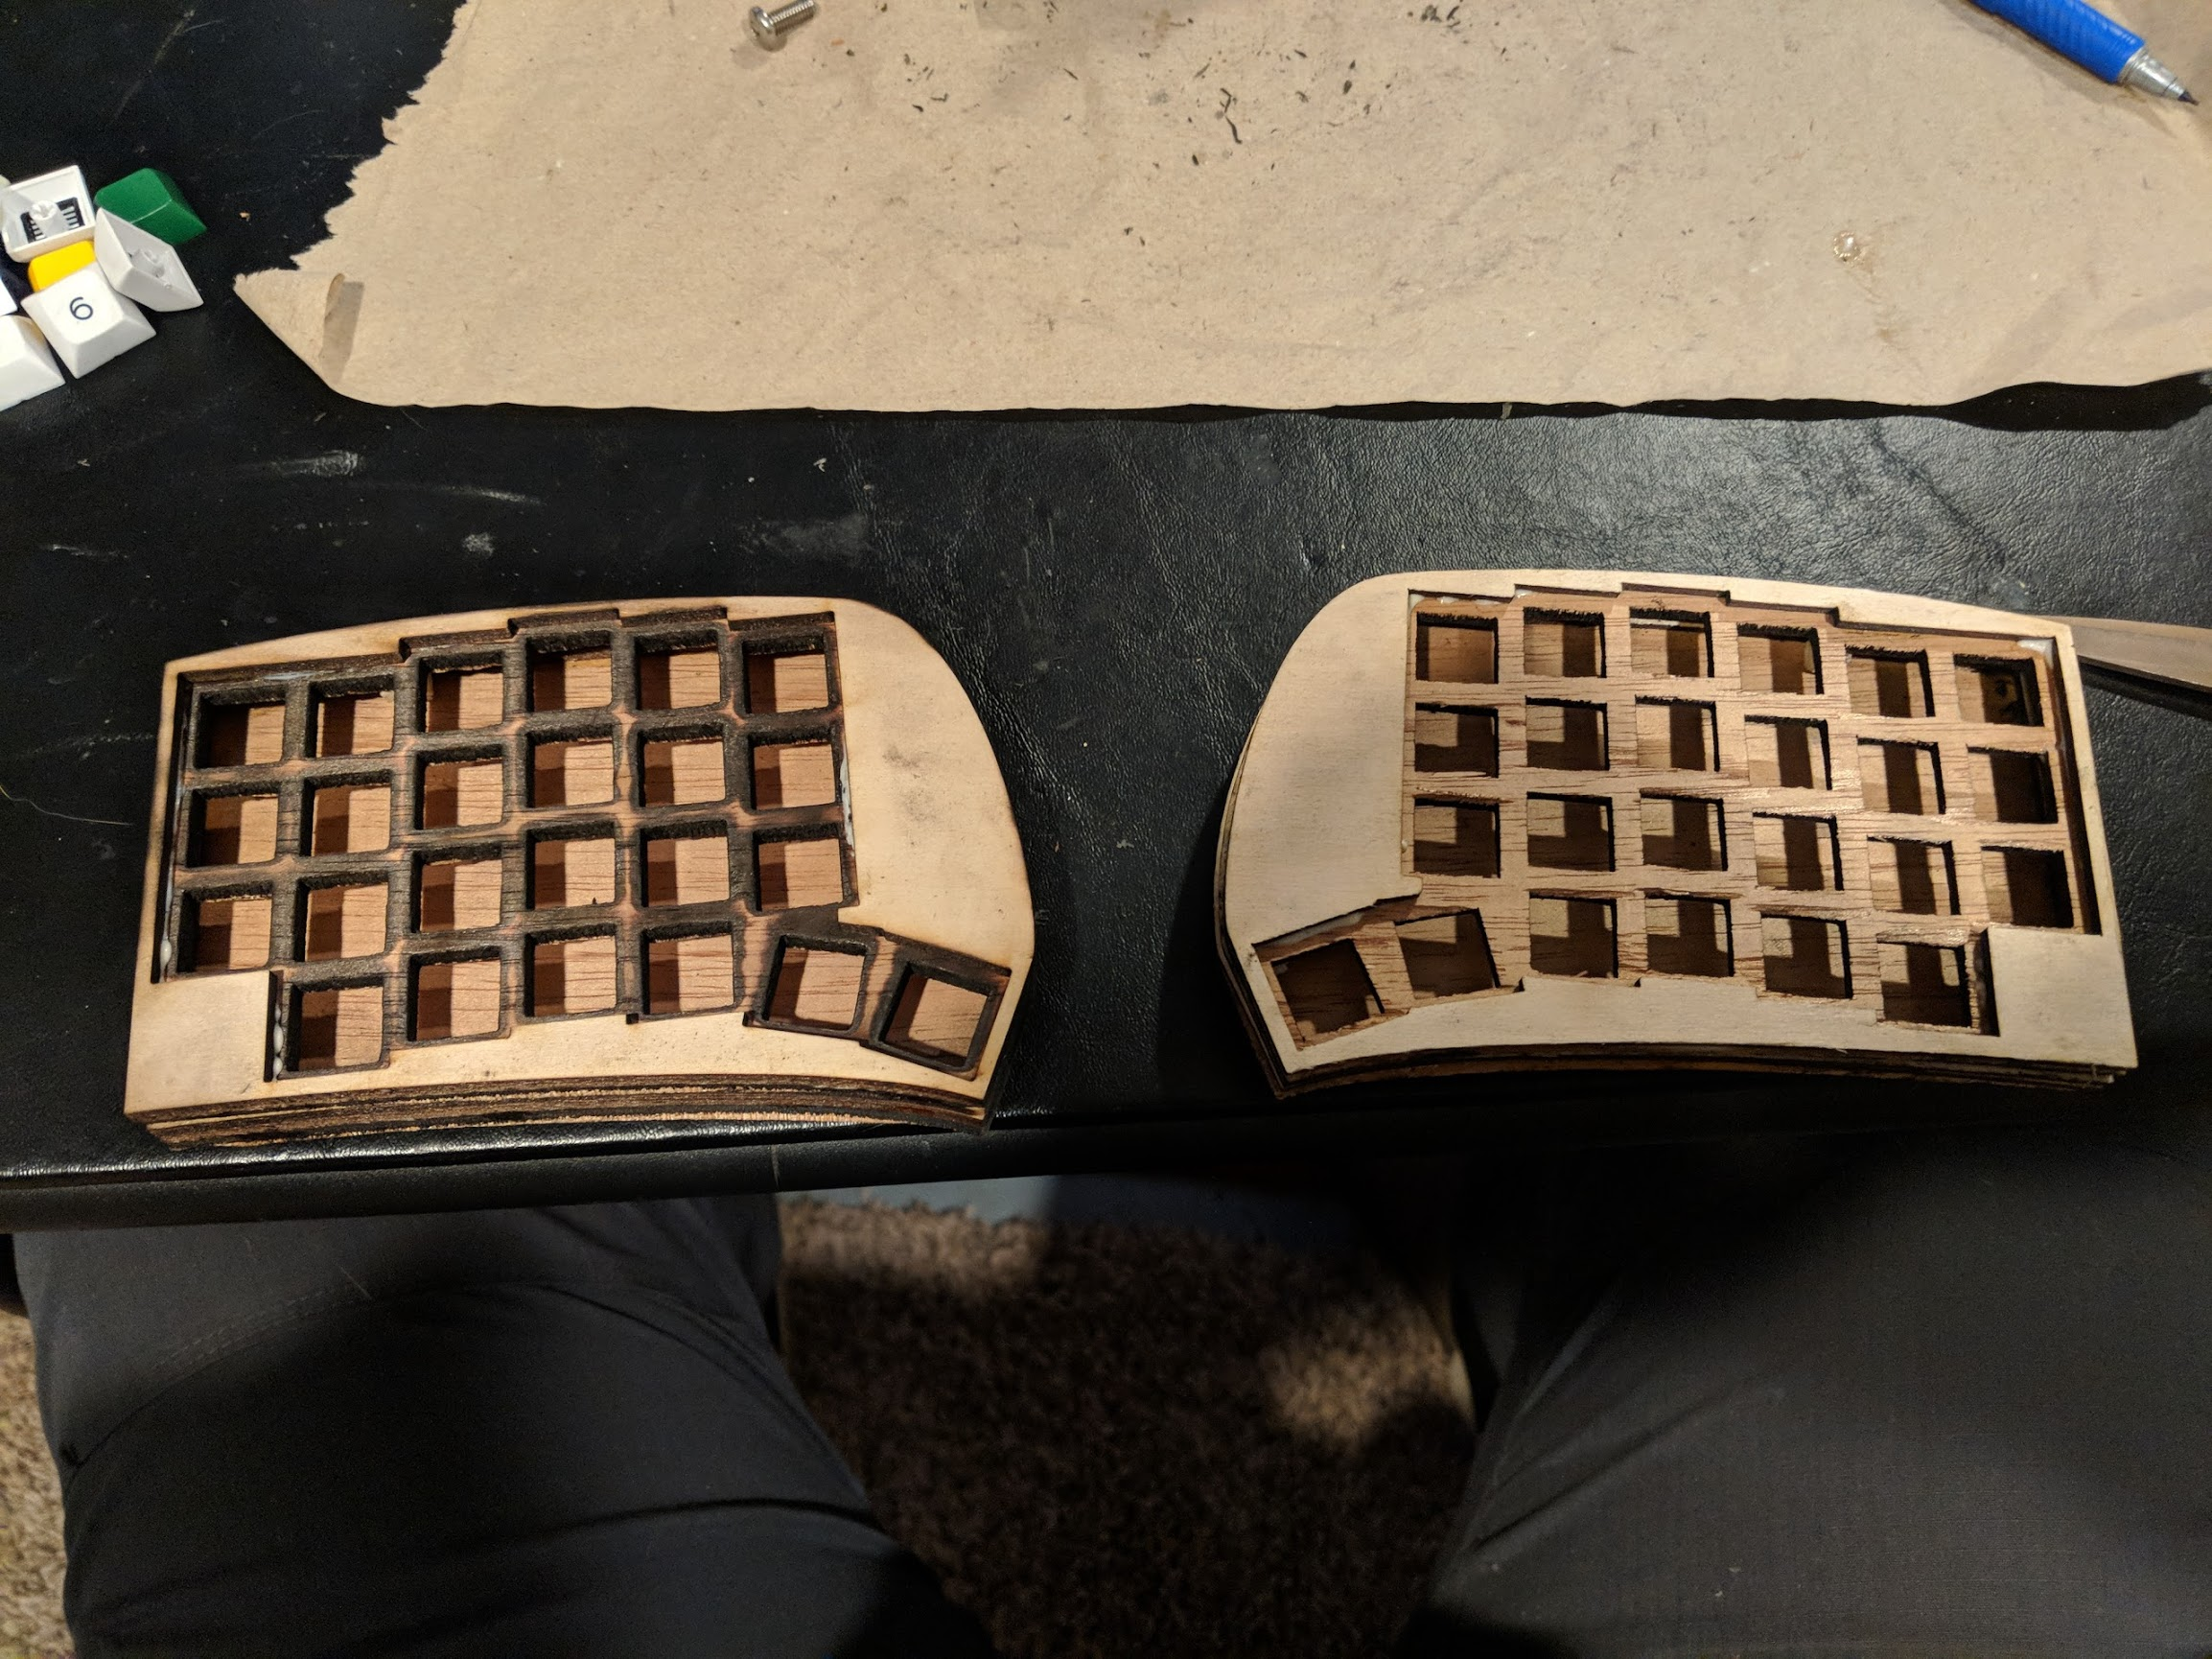 Split keyboard made of wood without any switches in it